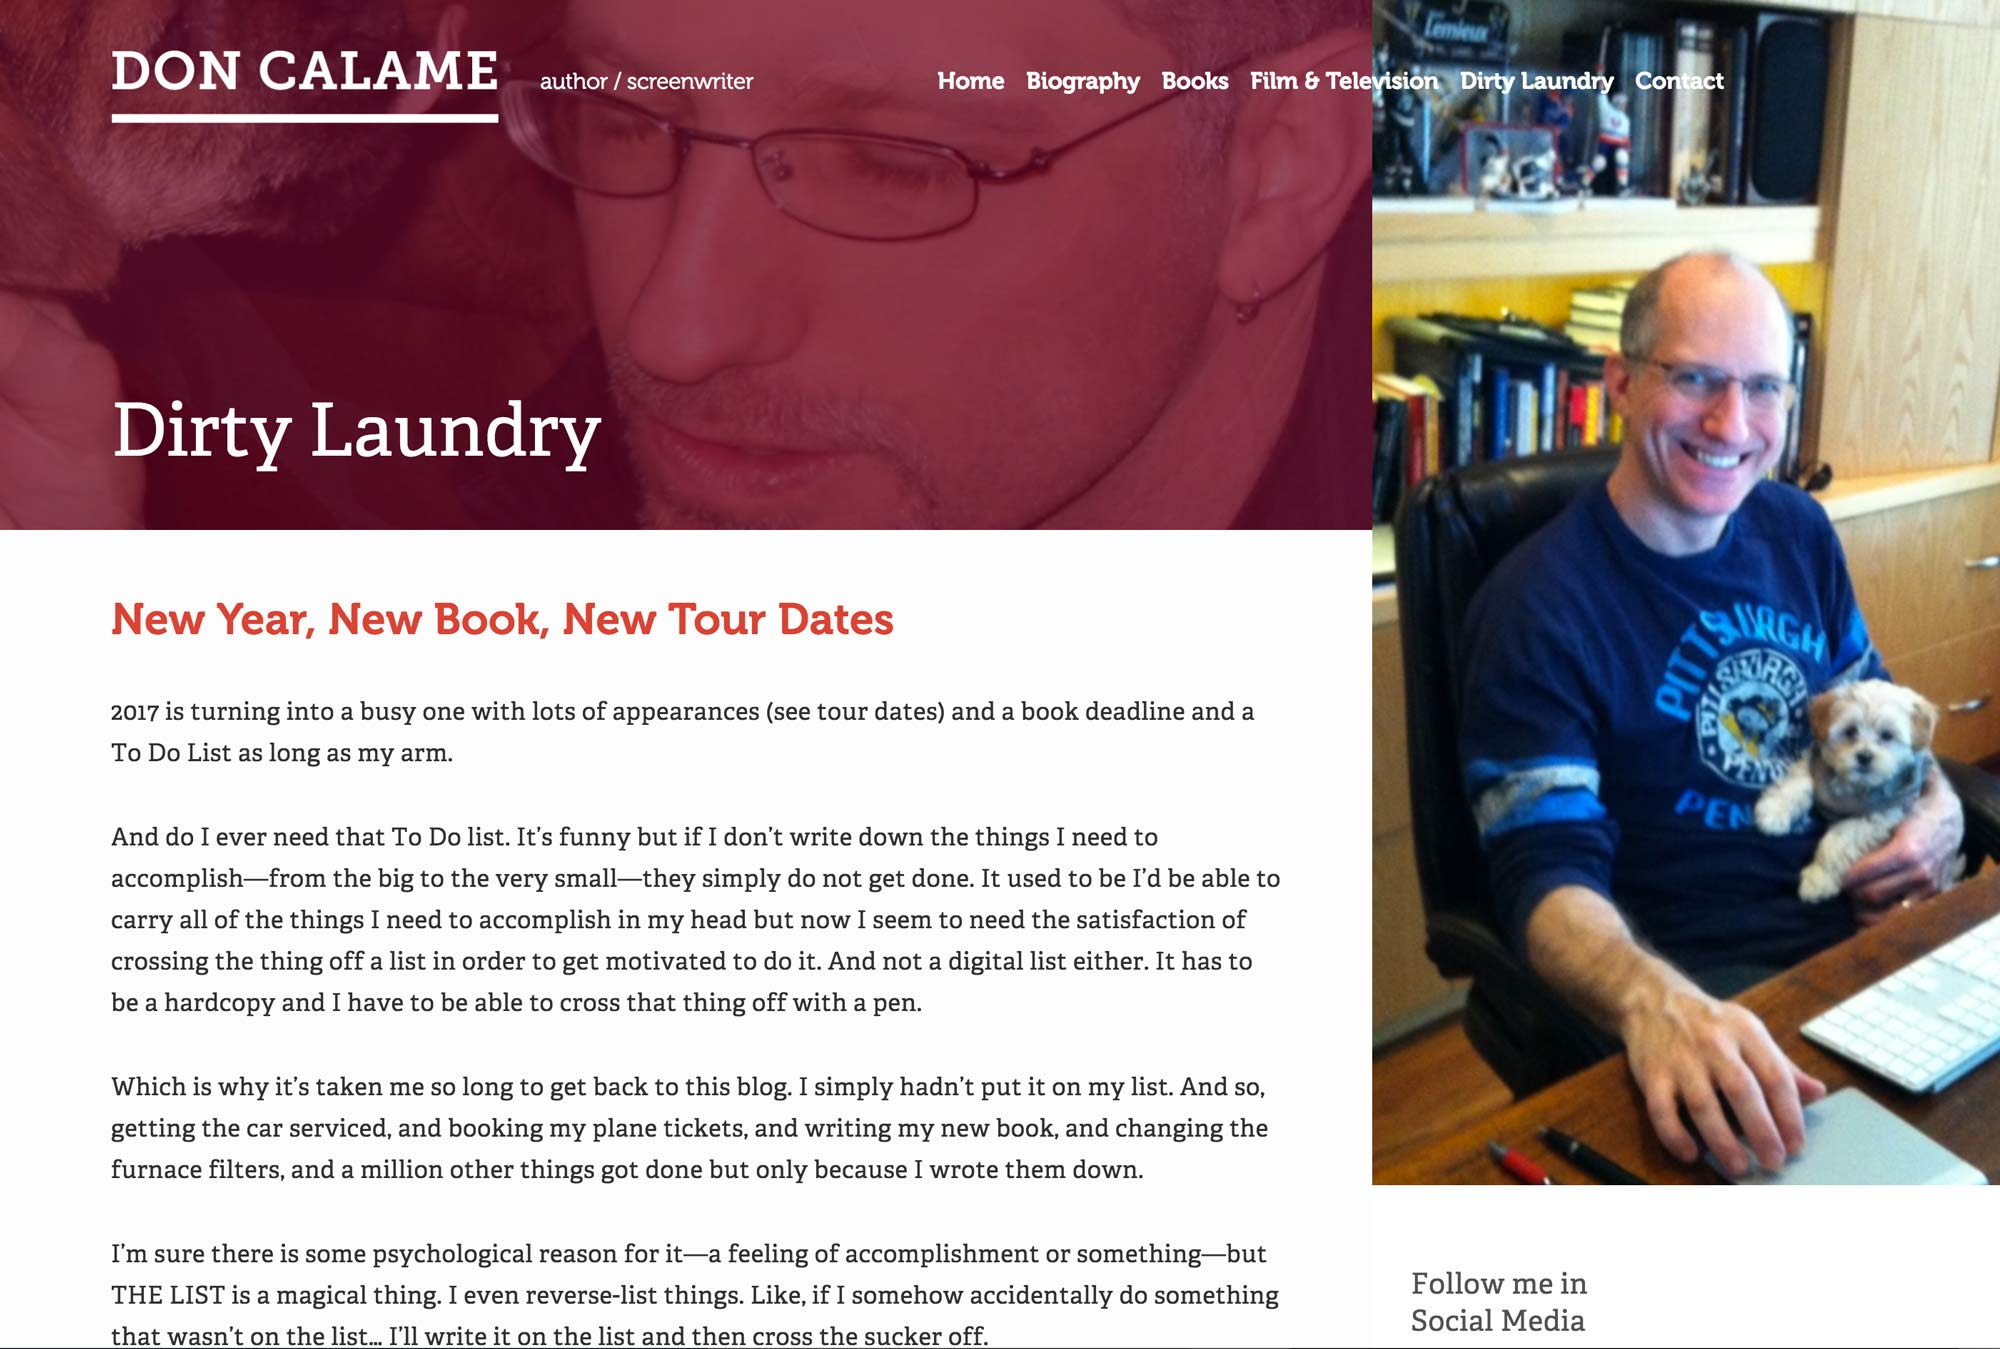 Screenshot of Don Calame's website blog entry